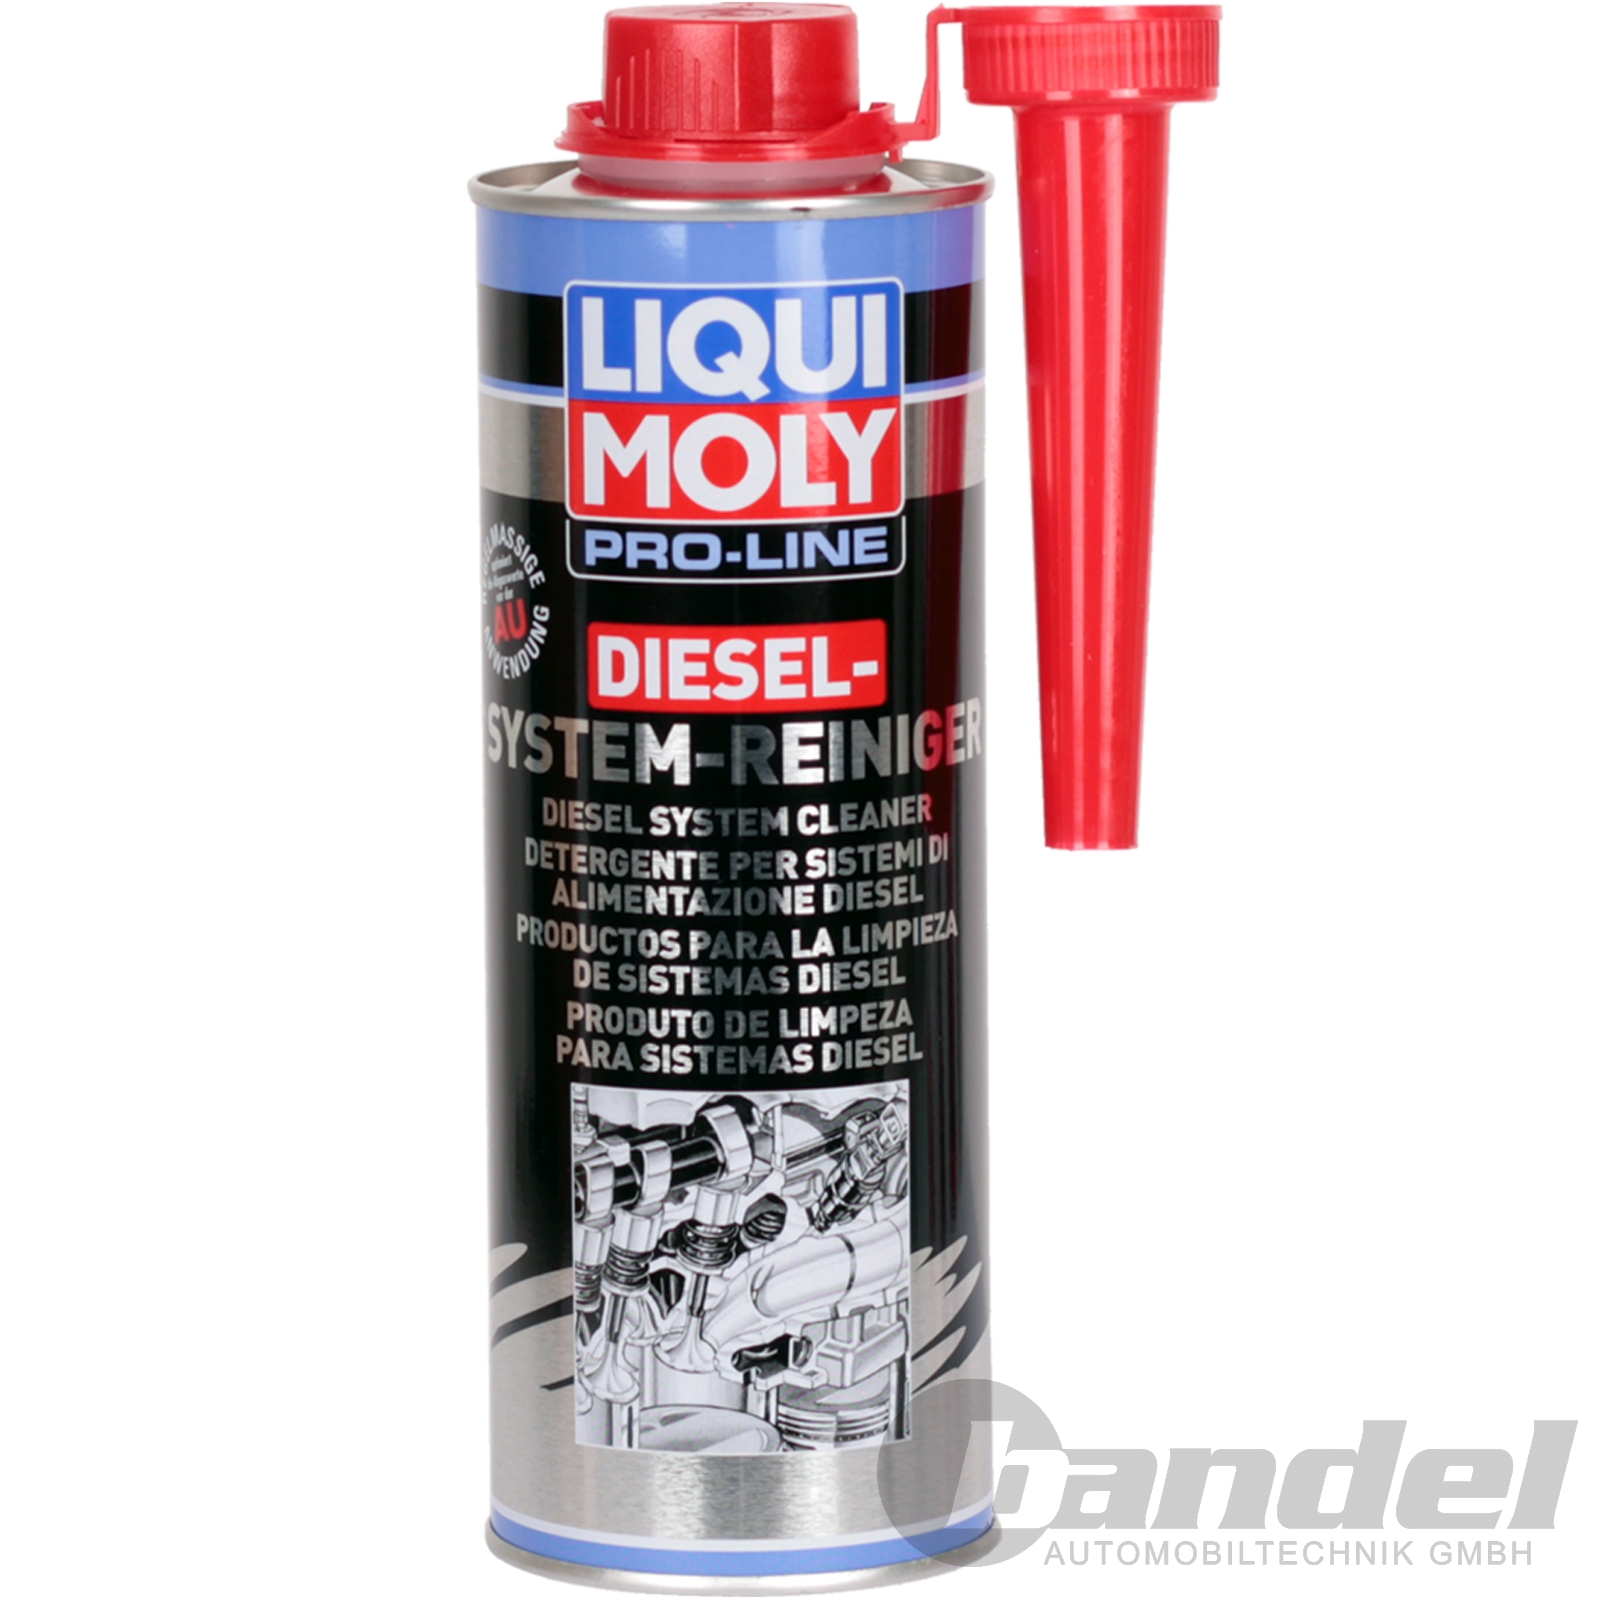 2 98 100ml liqui moly 5156 pro line diesel system. Black Bedroom Furniture Sets. Home Design Ideas